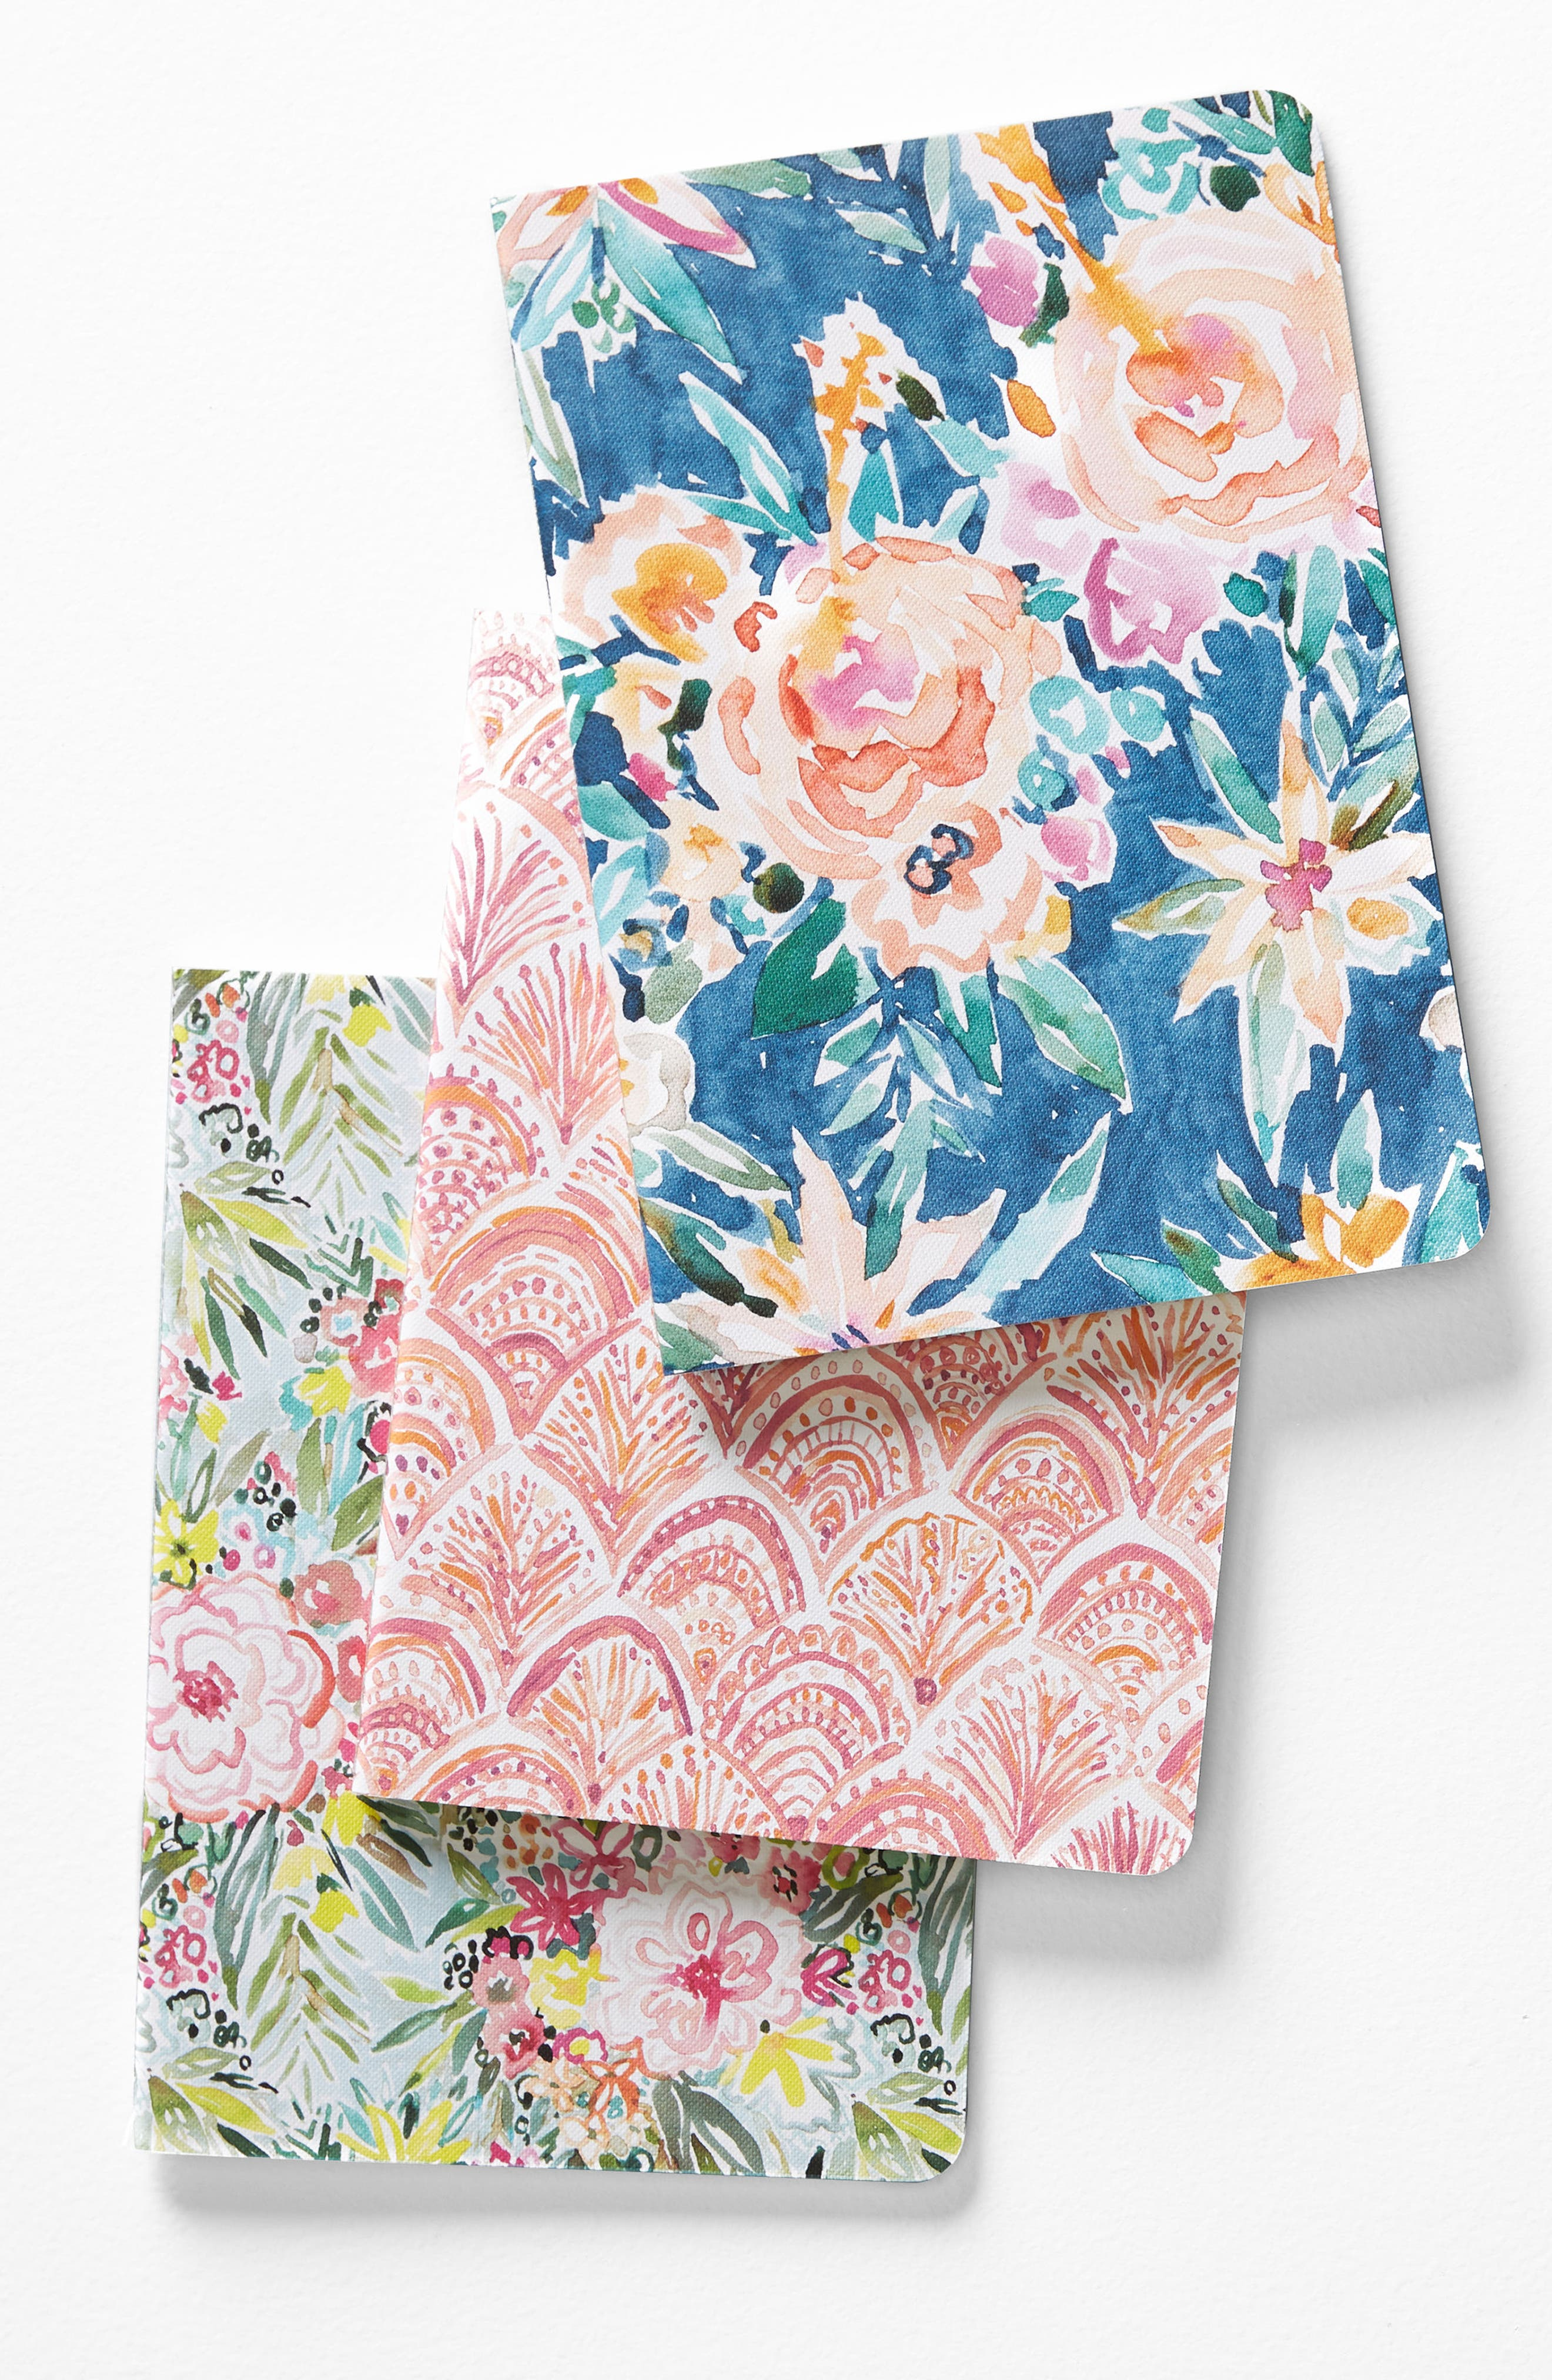 Wild At Heart Set of 3 Journals,                             Alternate thumbnail 3, color,                             400